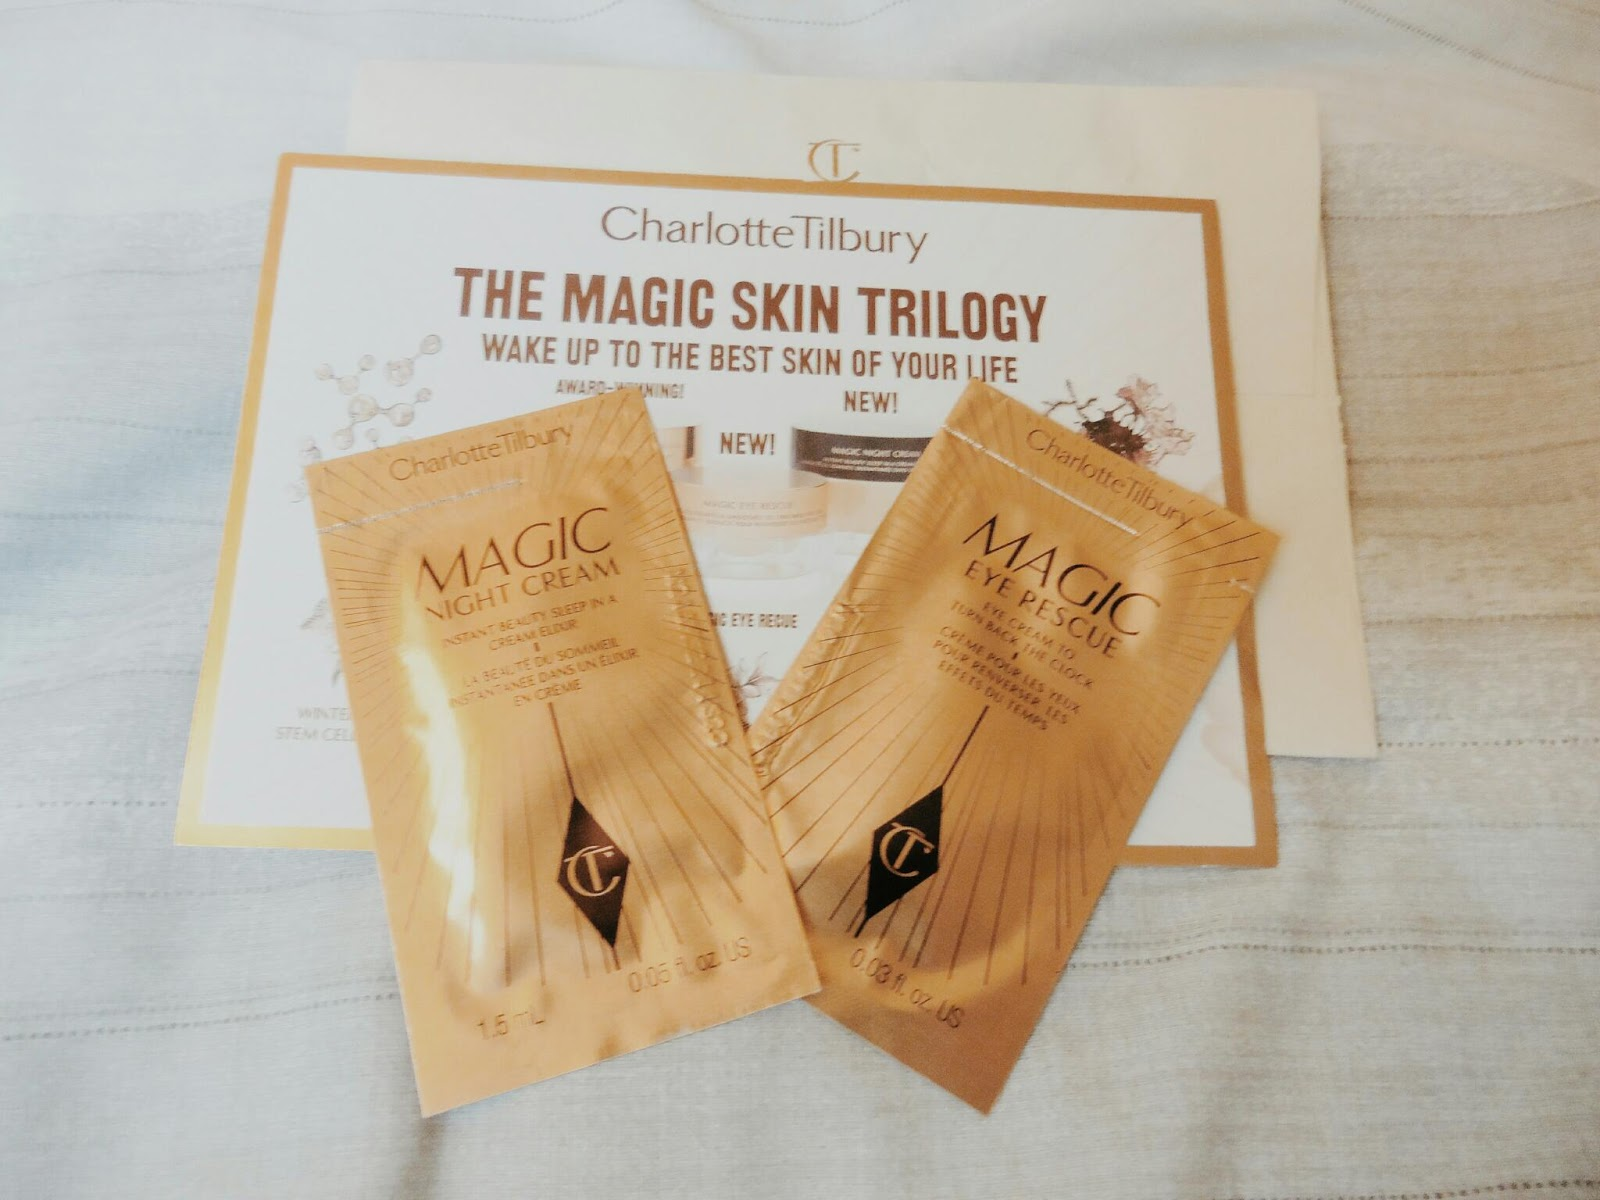 lebellelavie - Testing out the Charlotte Tilbury Magic Night Cream